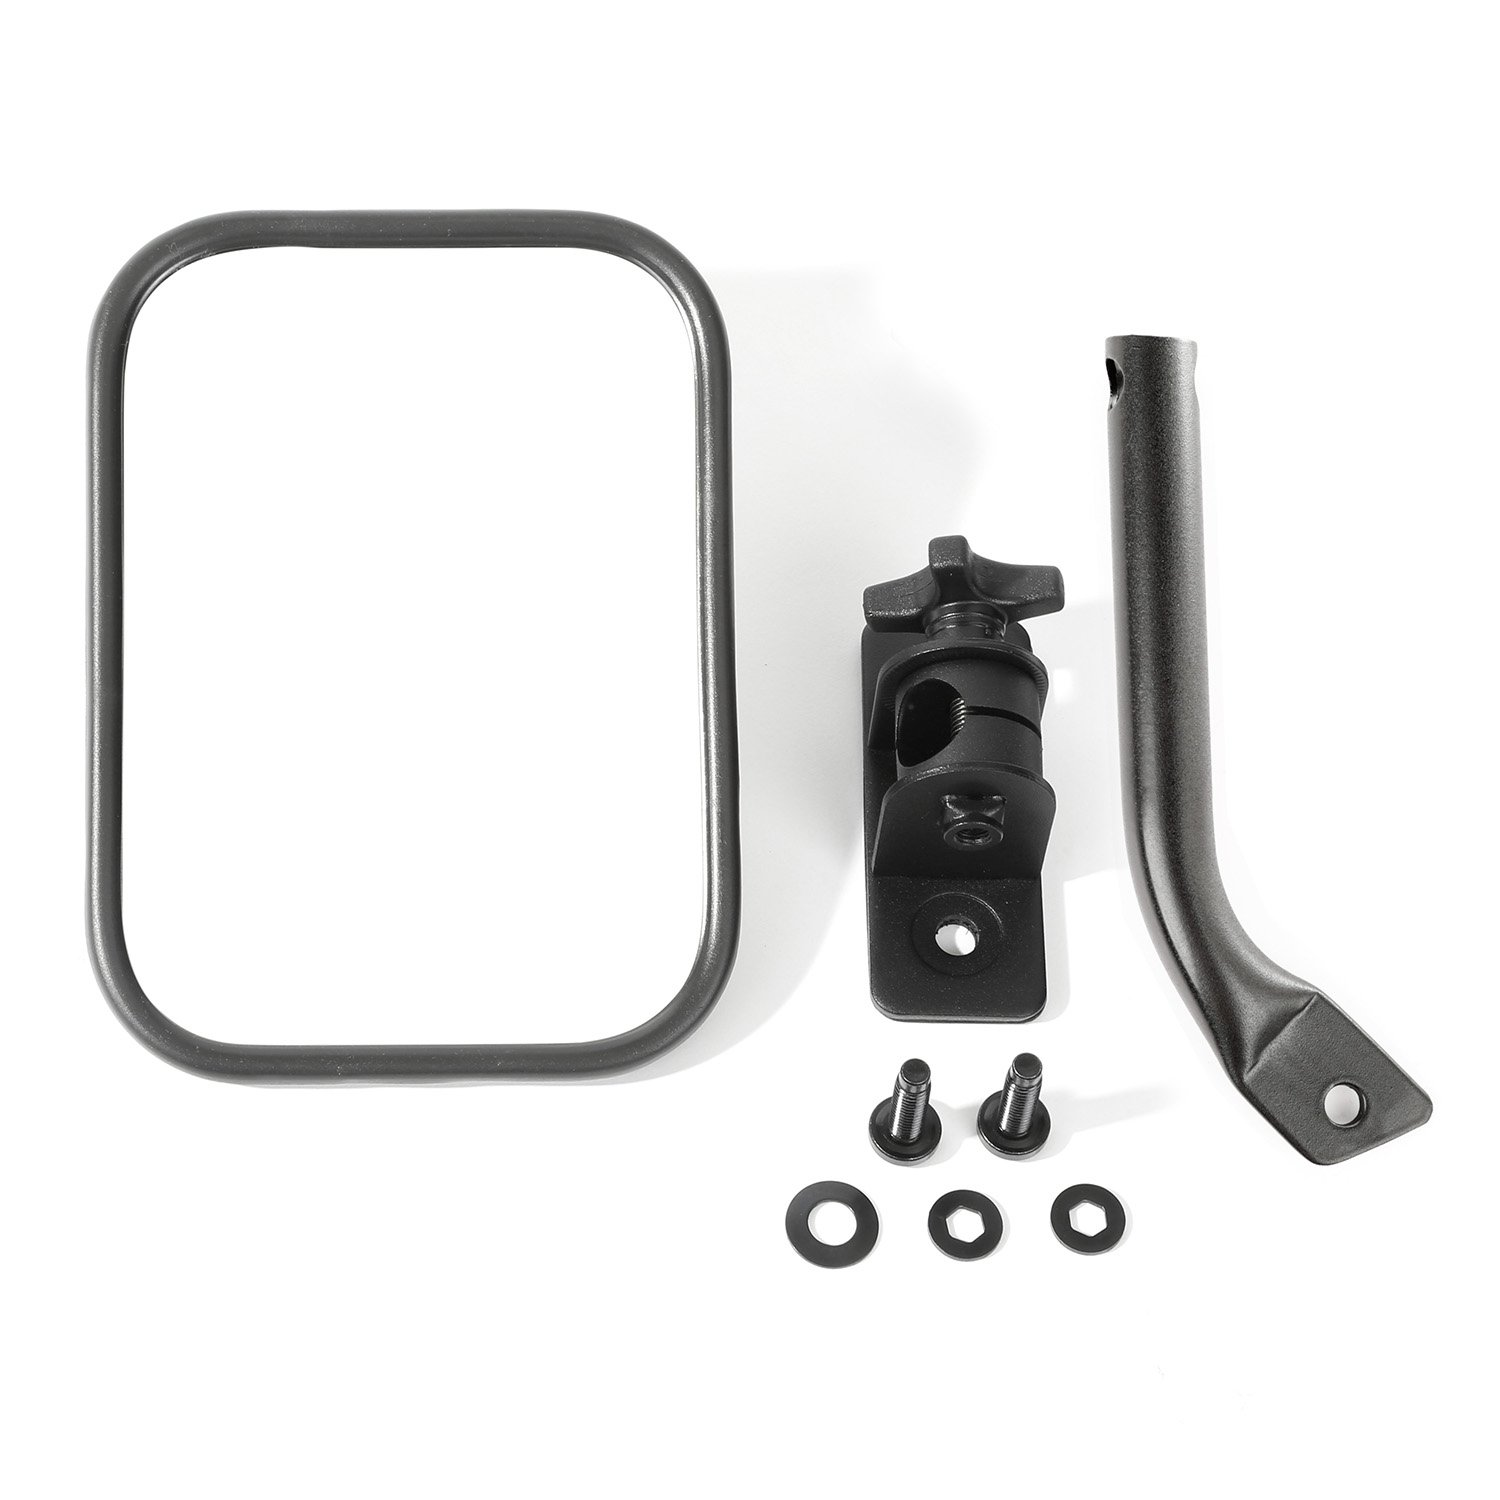 Rugged Ridge 11025.18 Textured Black Rectangular Quick Release Mirror Kit for 1997-2018 Jeep Wrangler